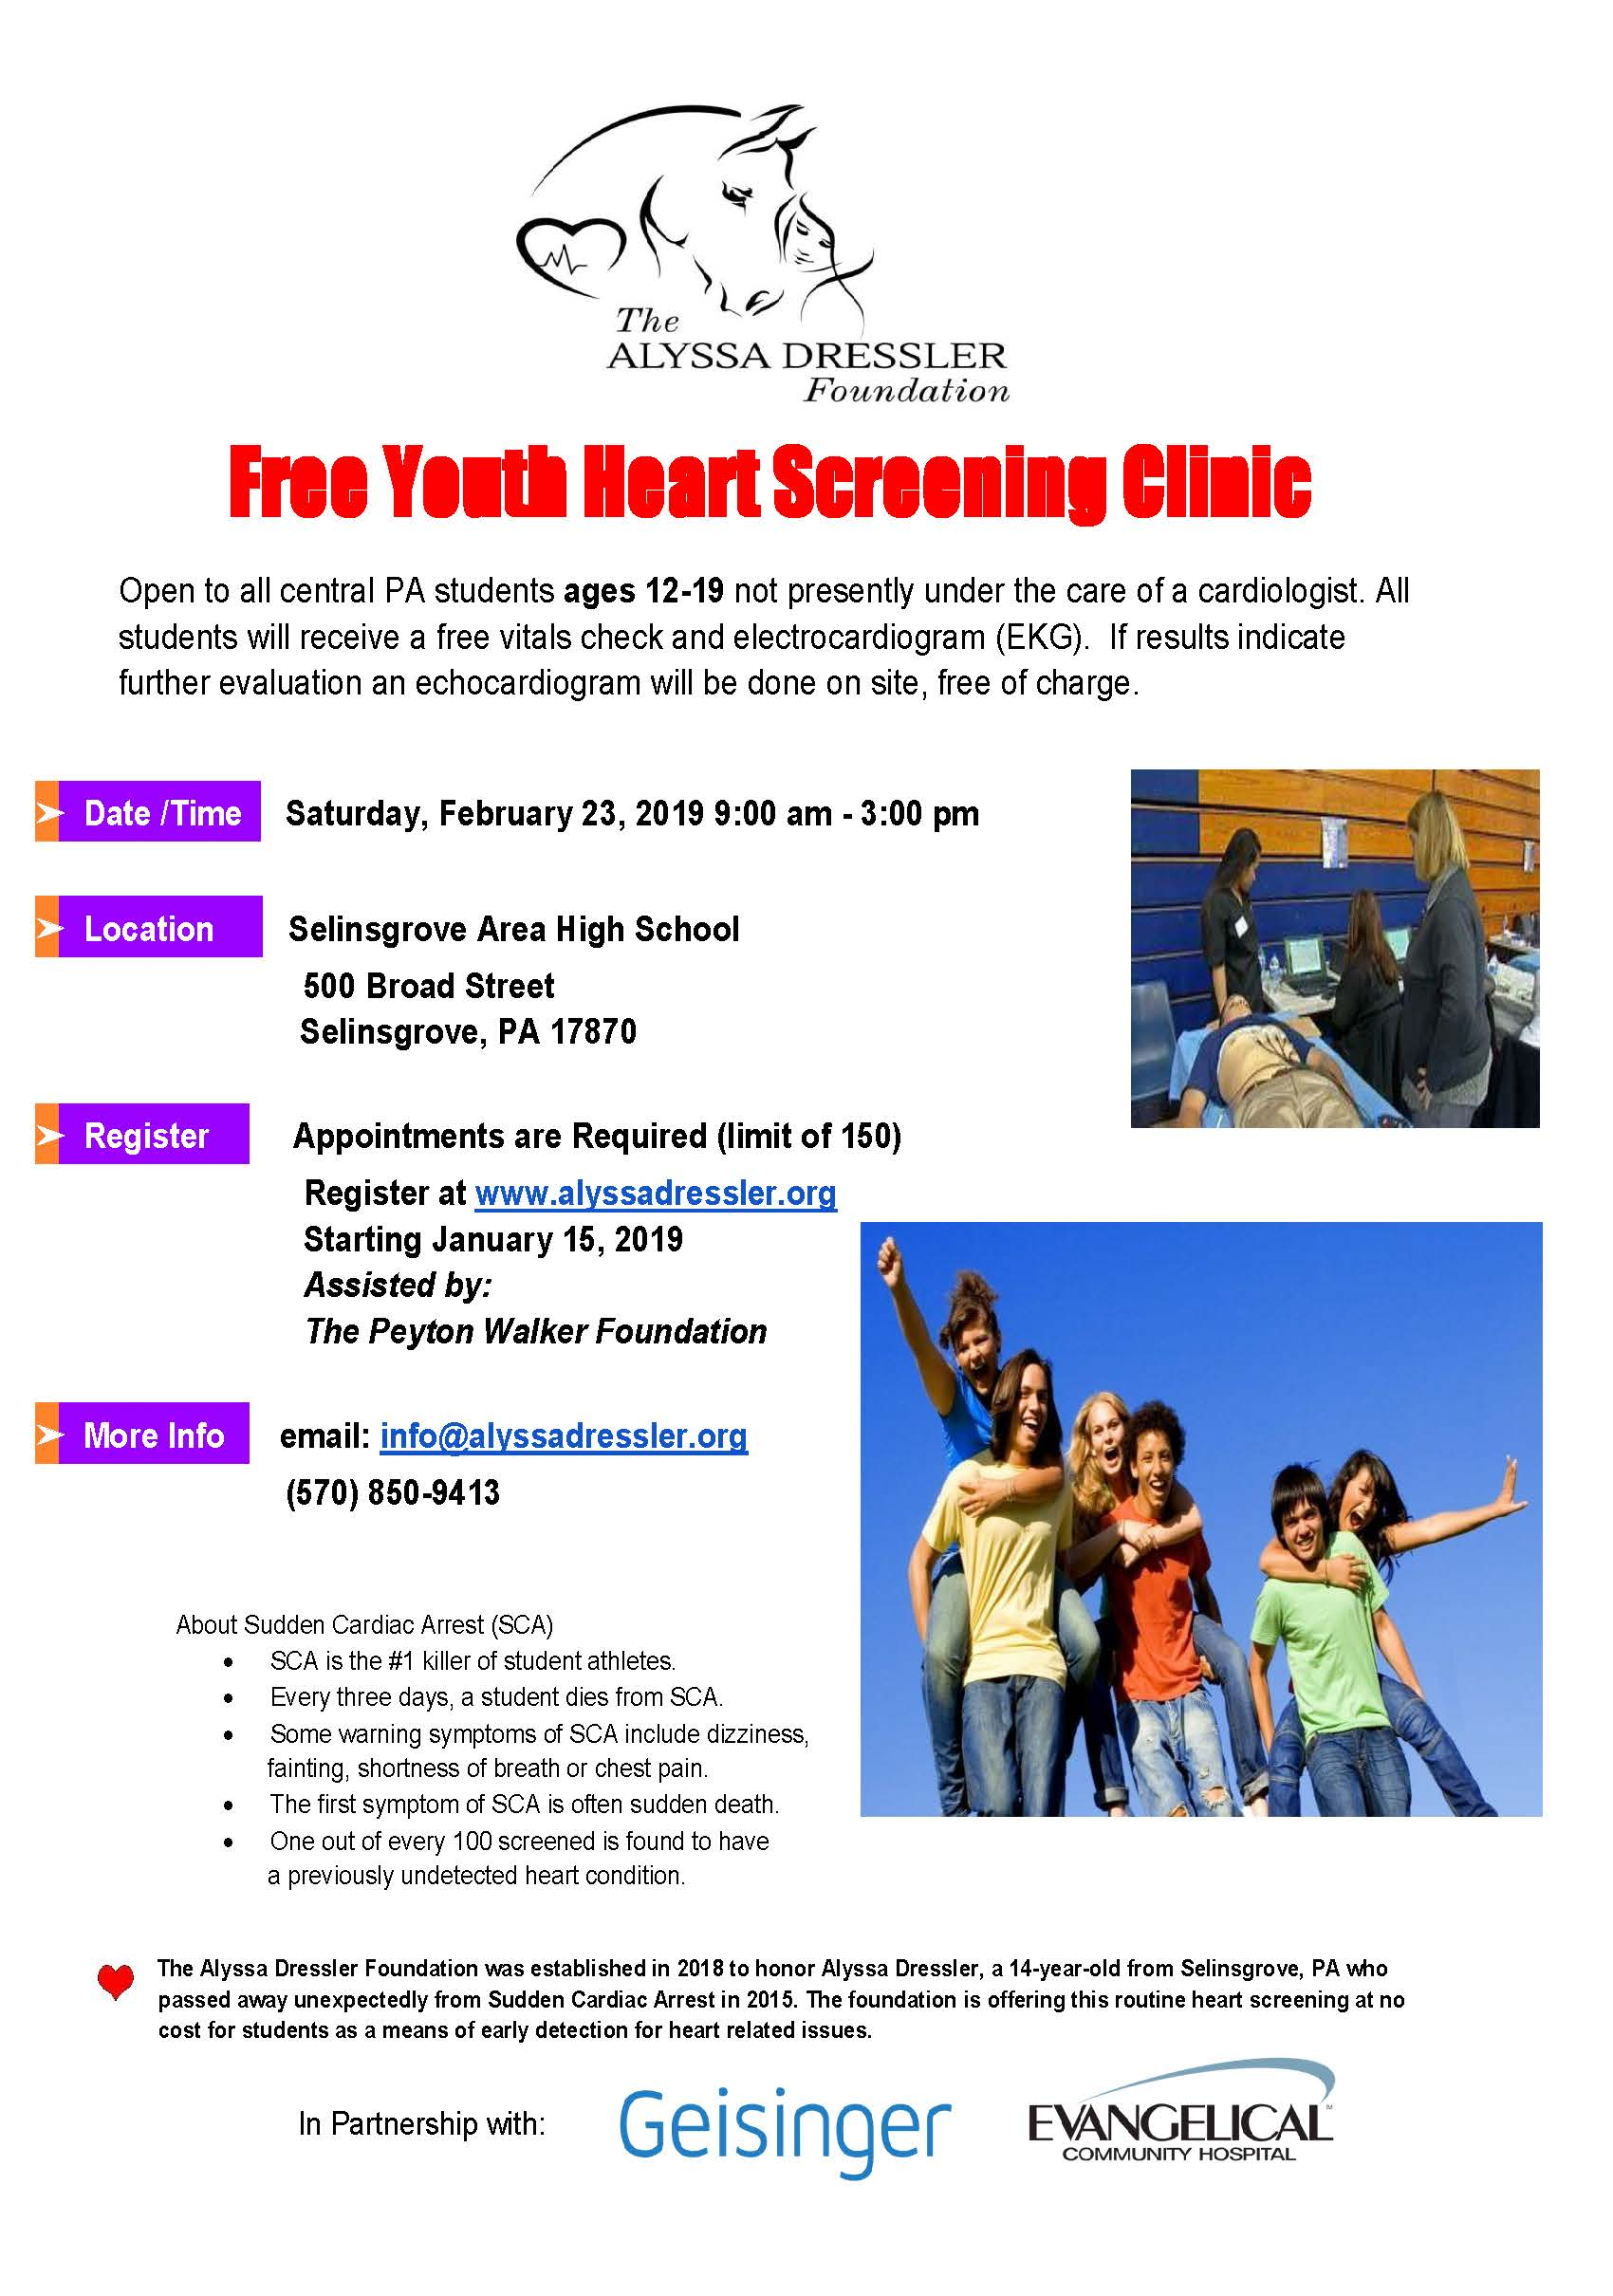 Free Youth Heart Screening Clinic